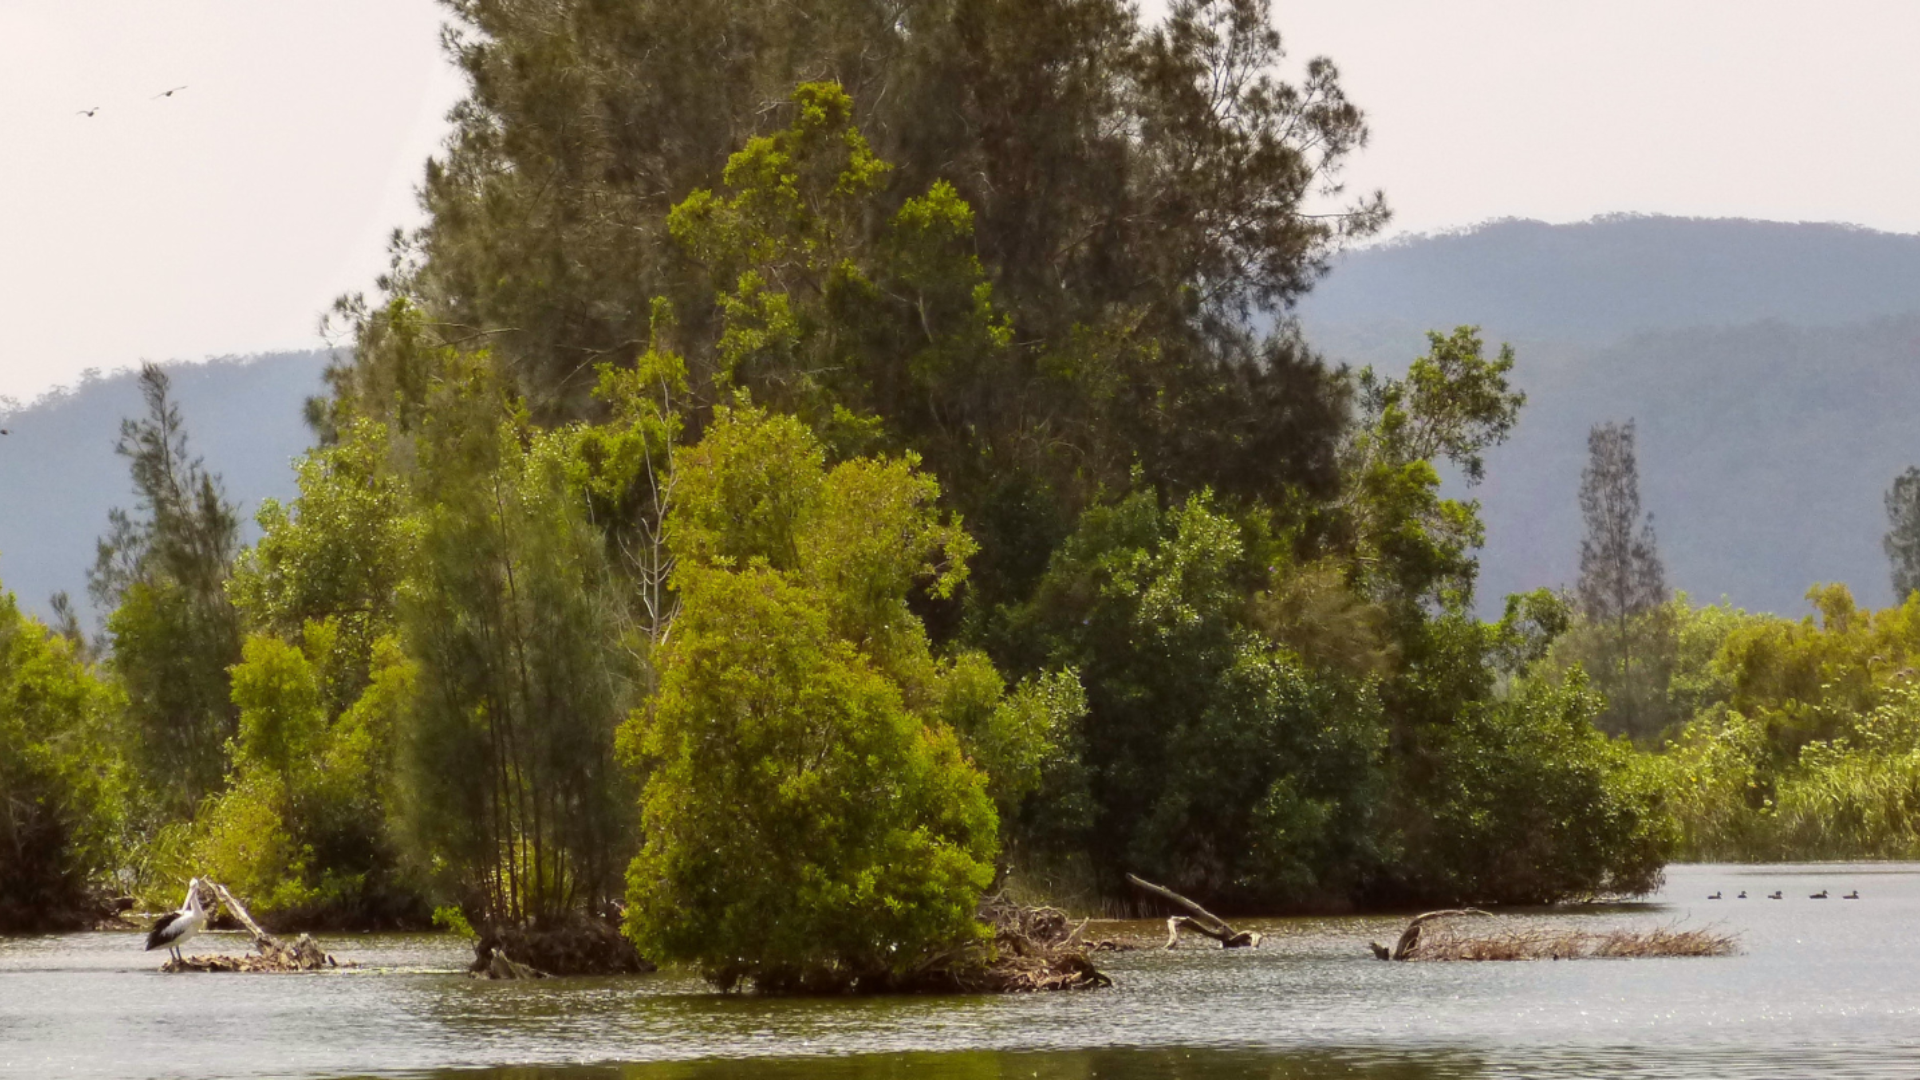 Pelican hanging out on the river - noosa